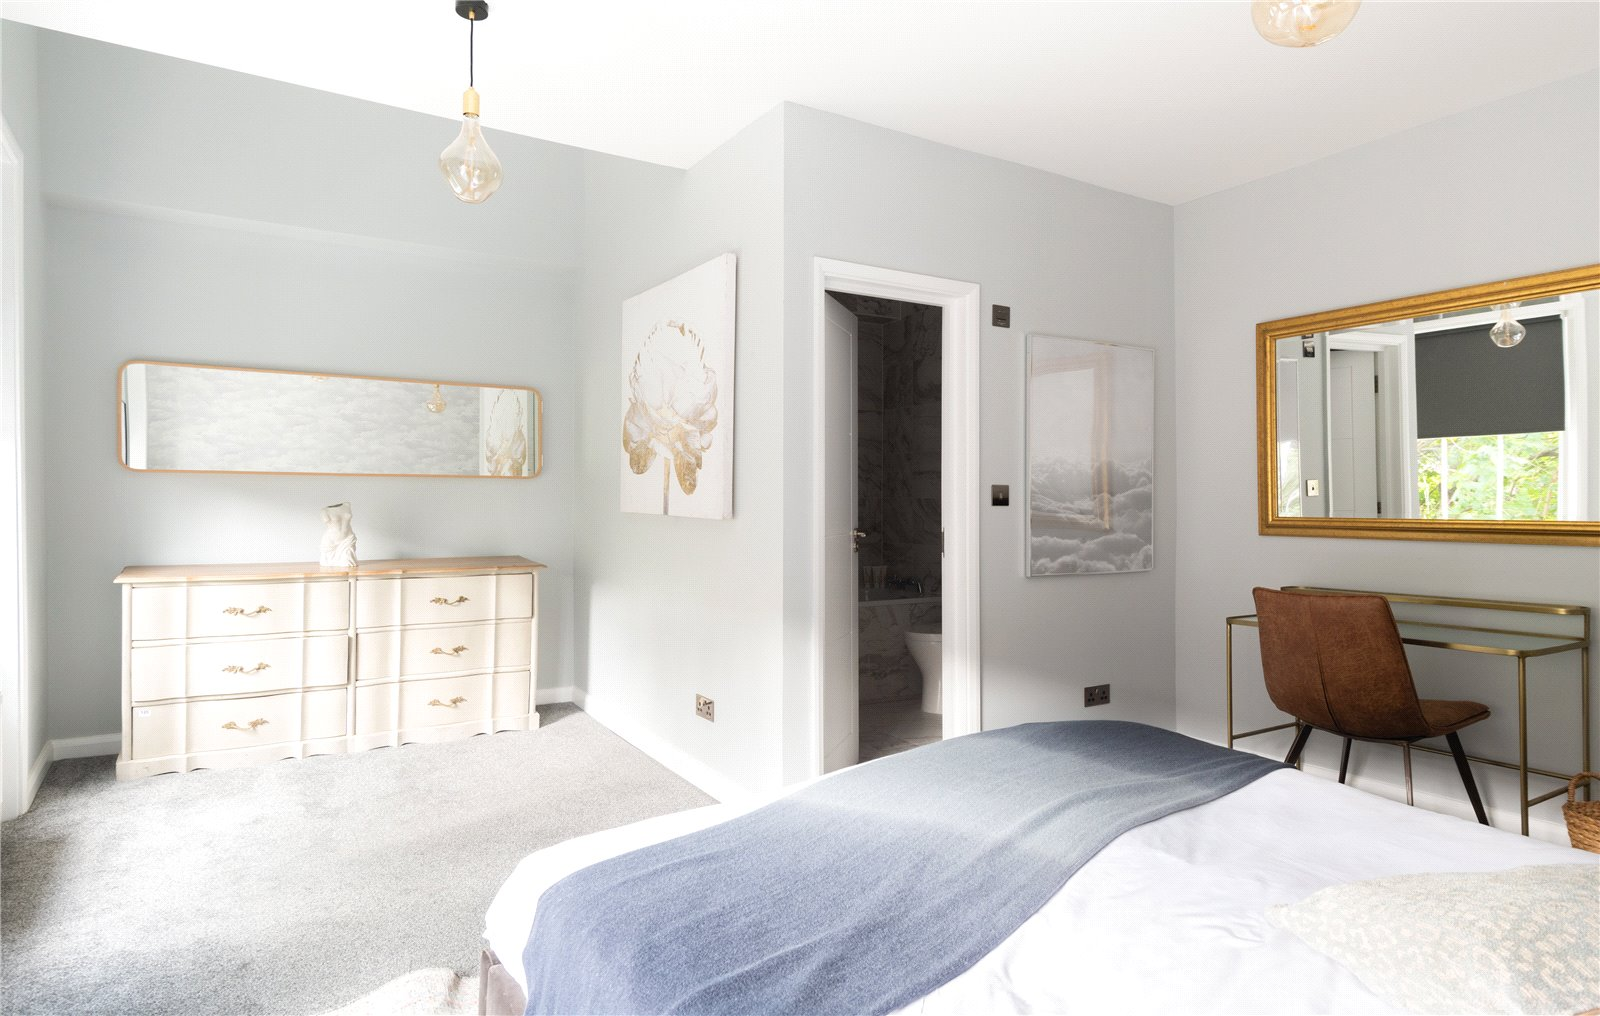 3 bed apartment for sale in Kentish Town, NW5 4DA 2